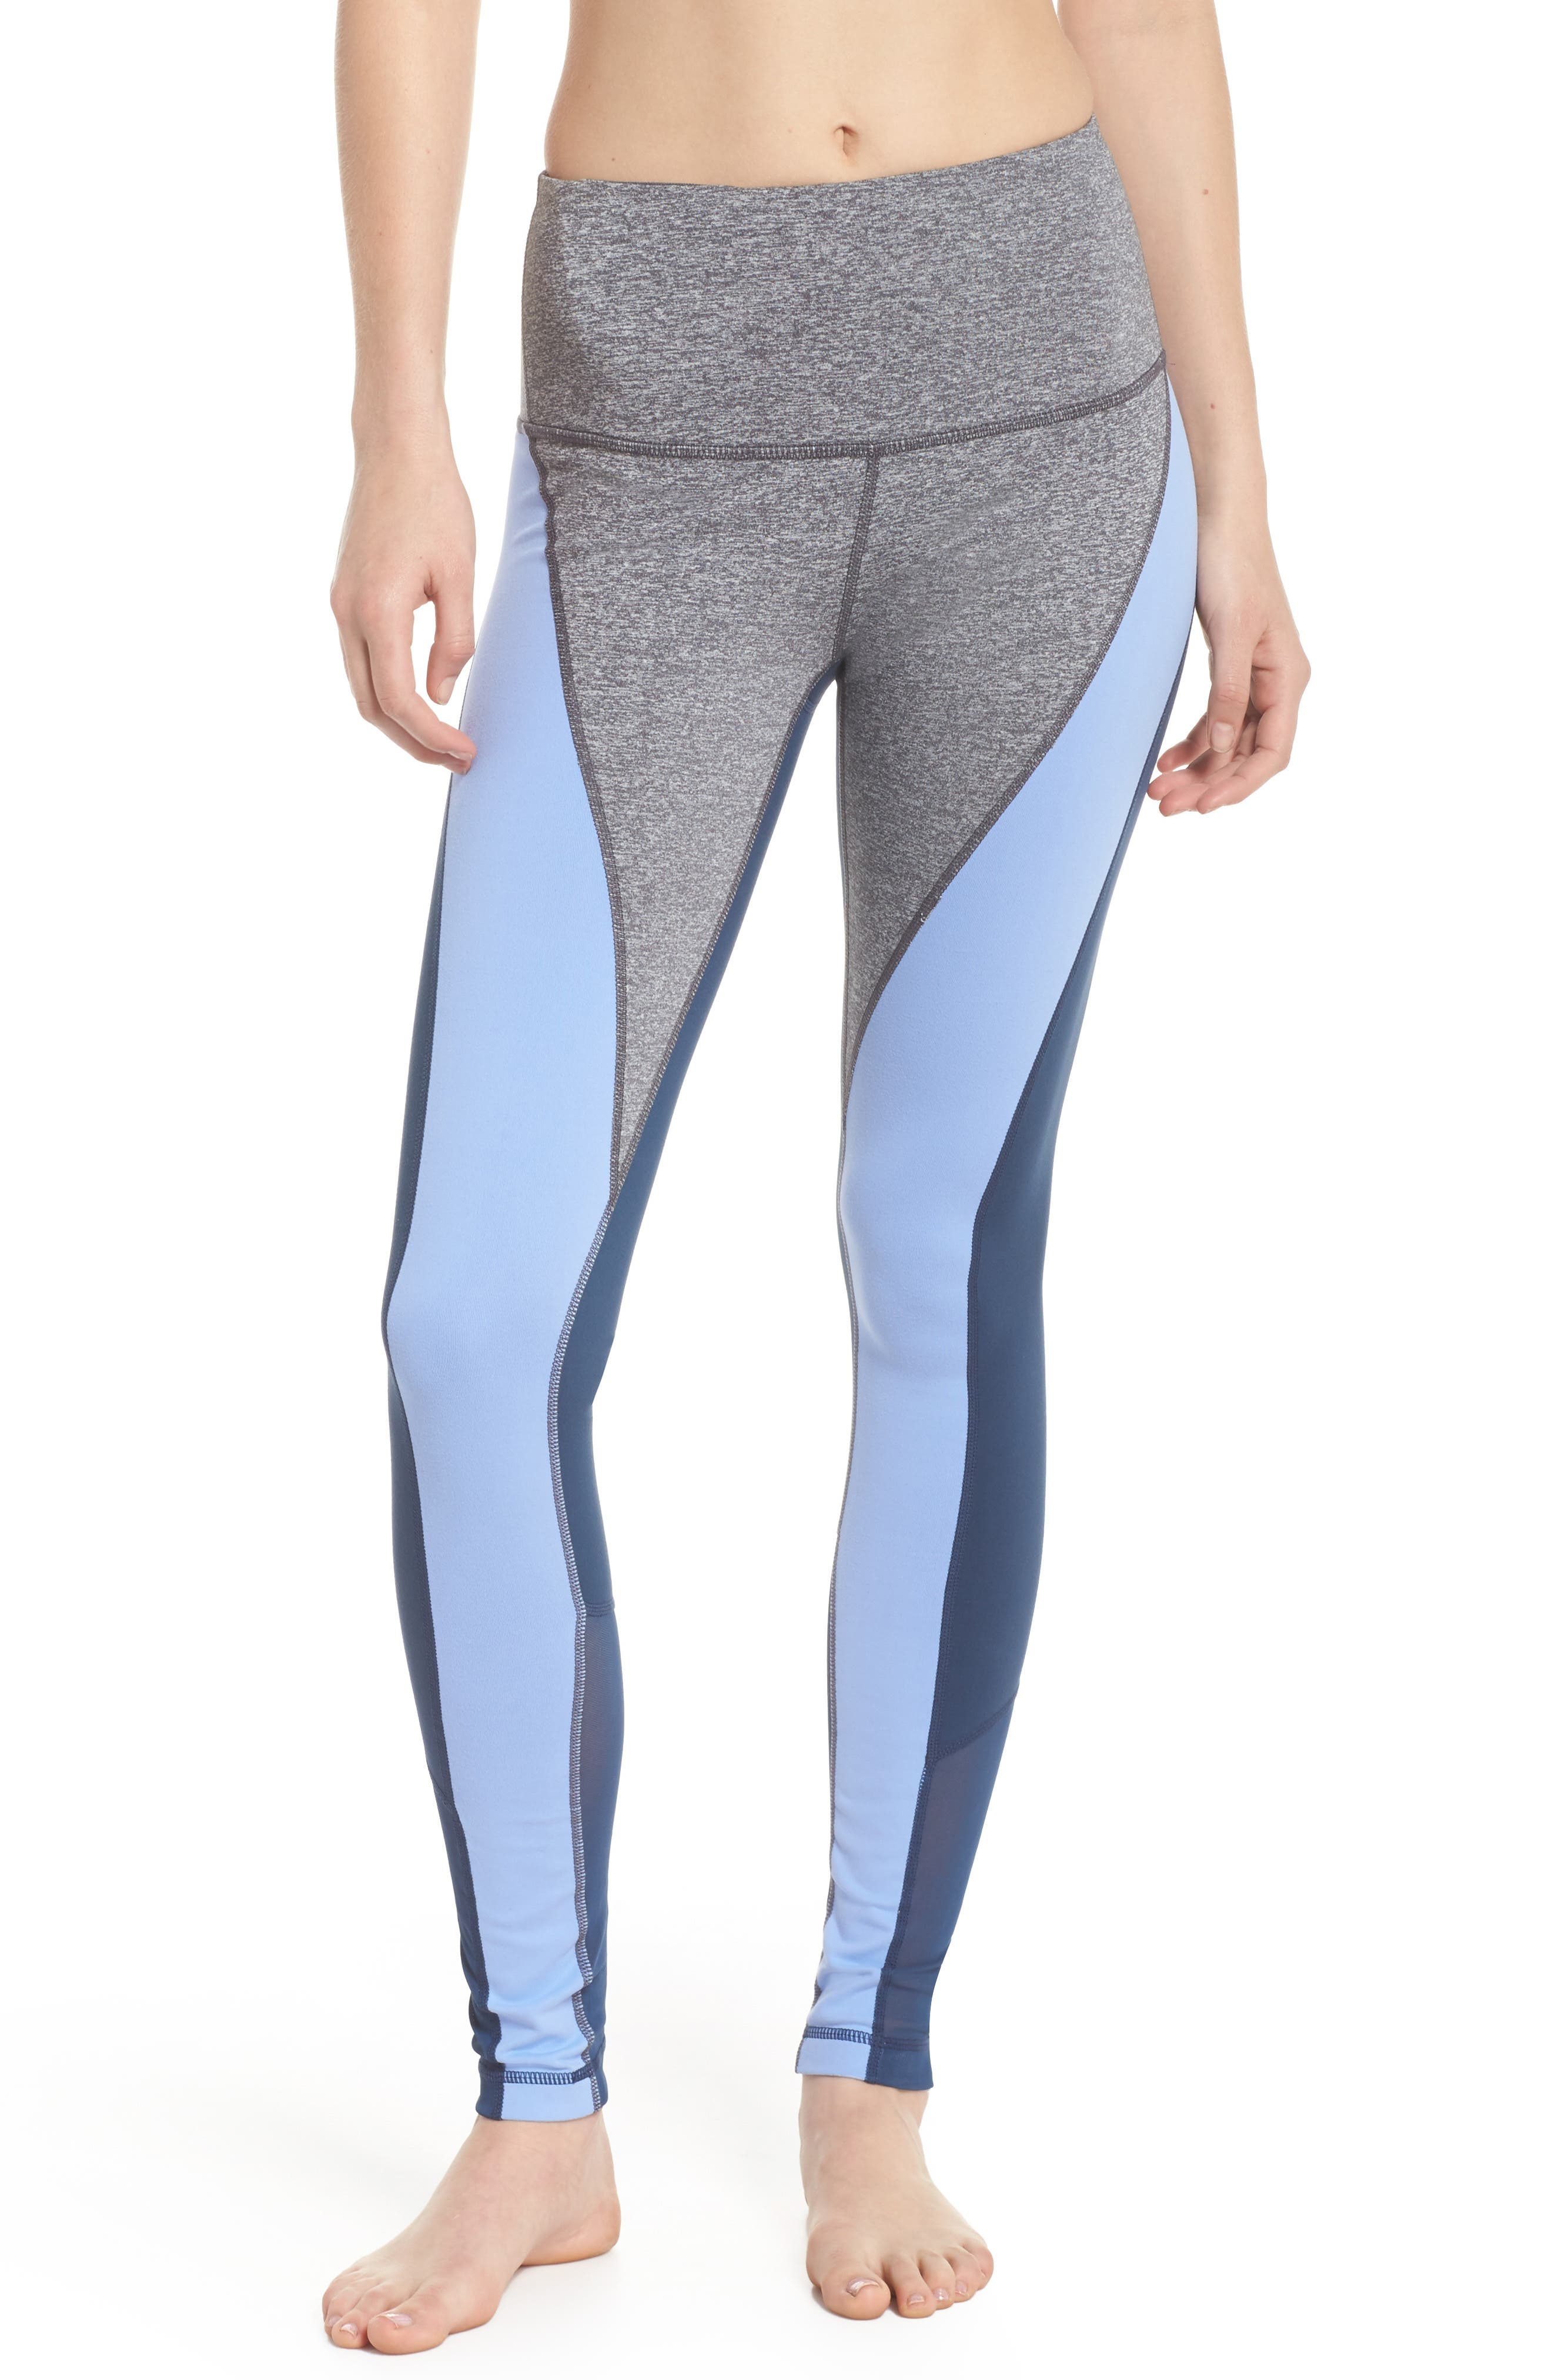 Get in Line High Waist Leggings,                             Main thumbnail 1, color,                             030